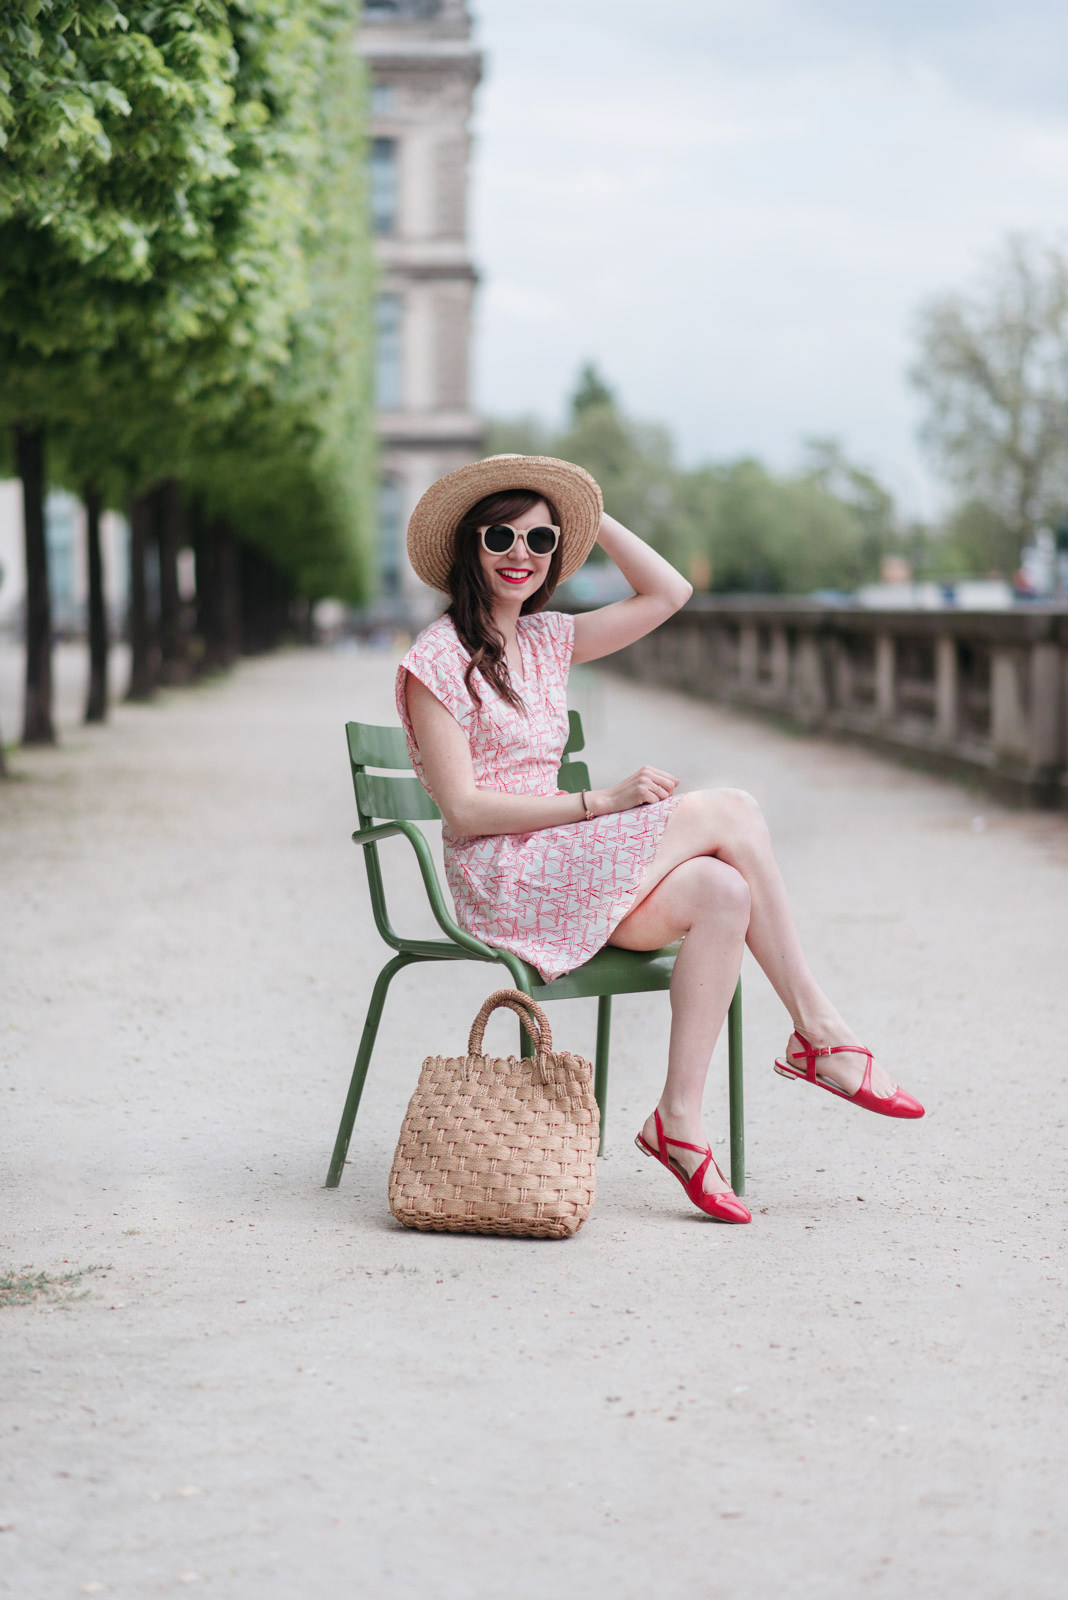 Blog-Mode-And-The-City-Looks-la-robe-a-petits-bateaux-12